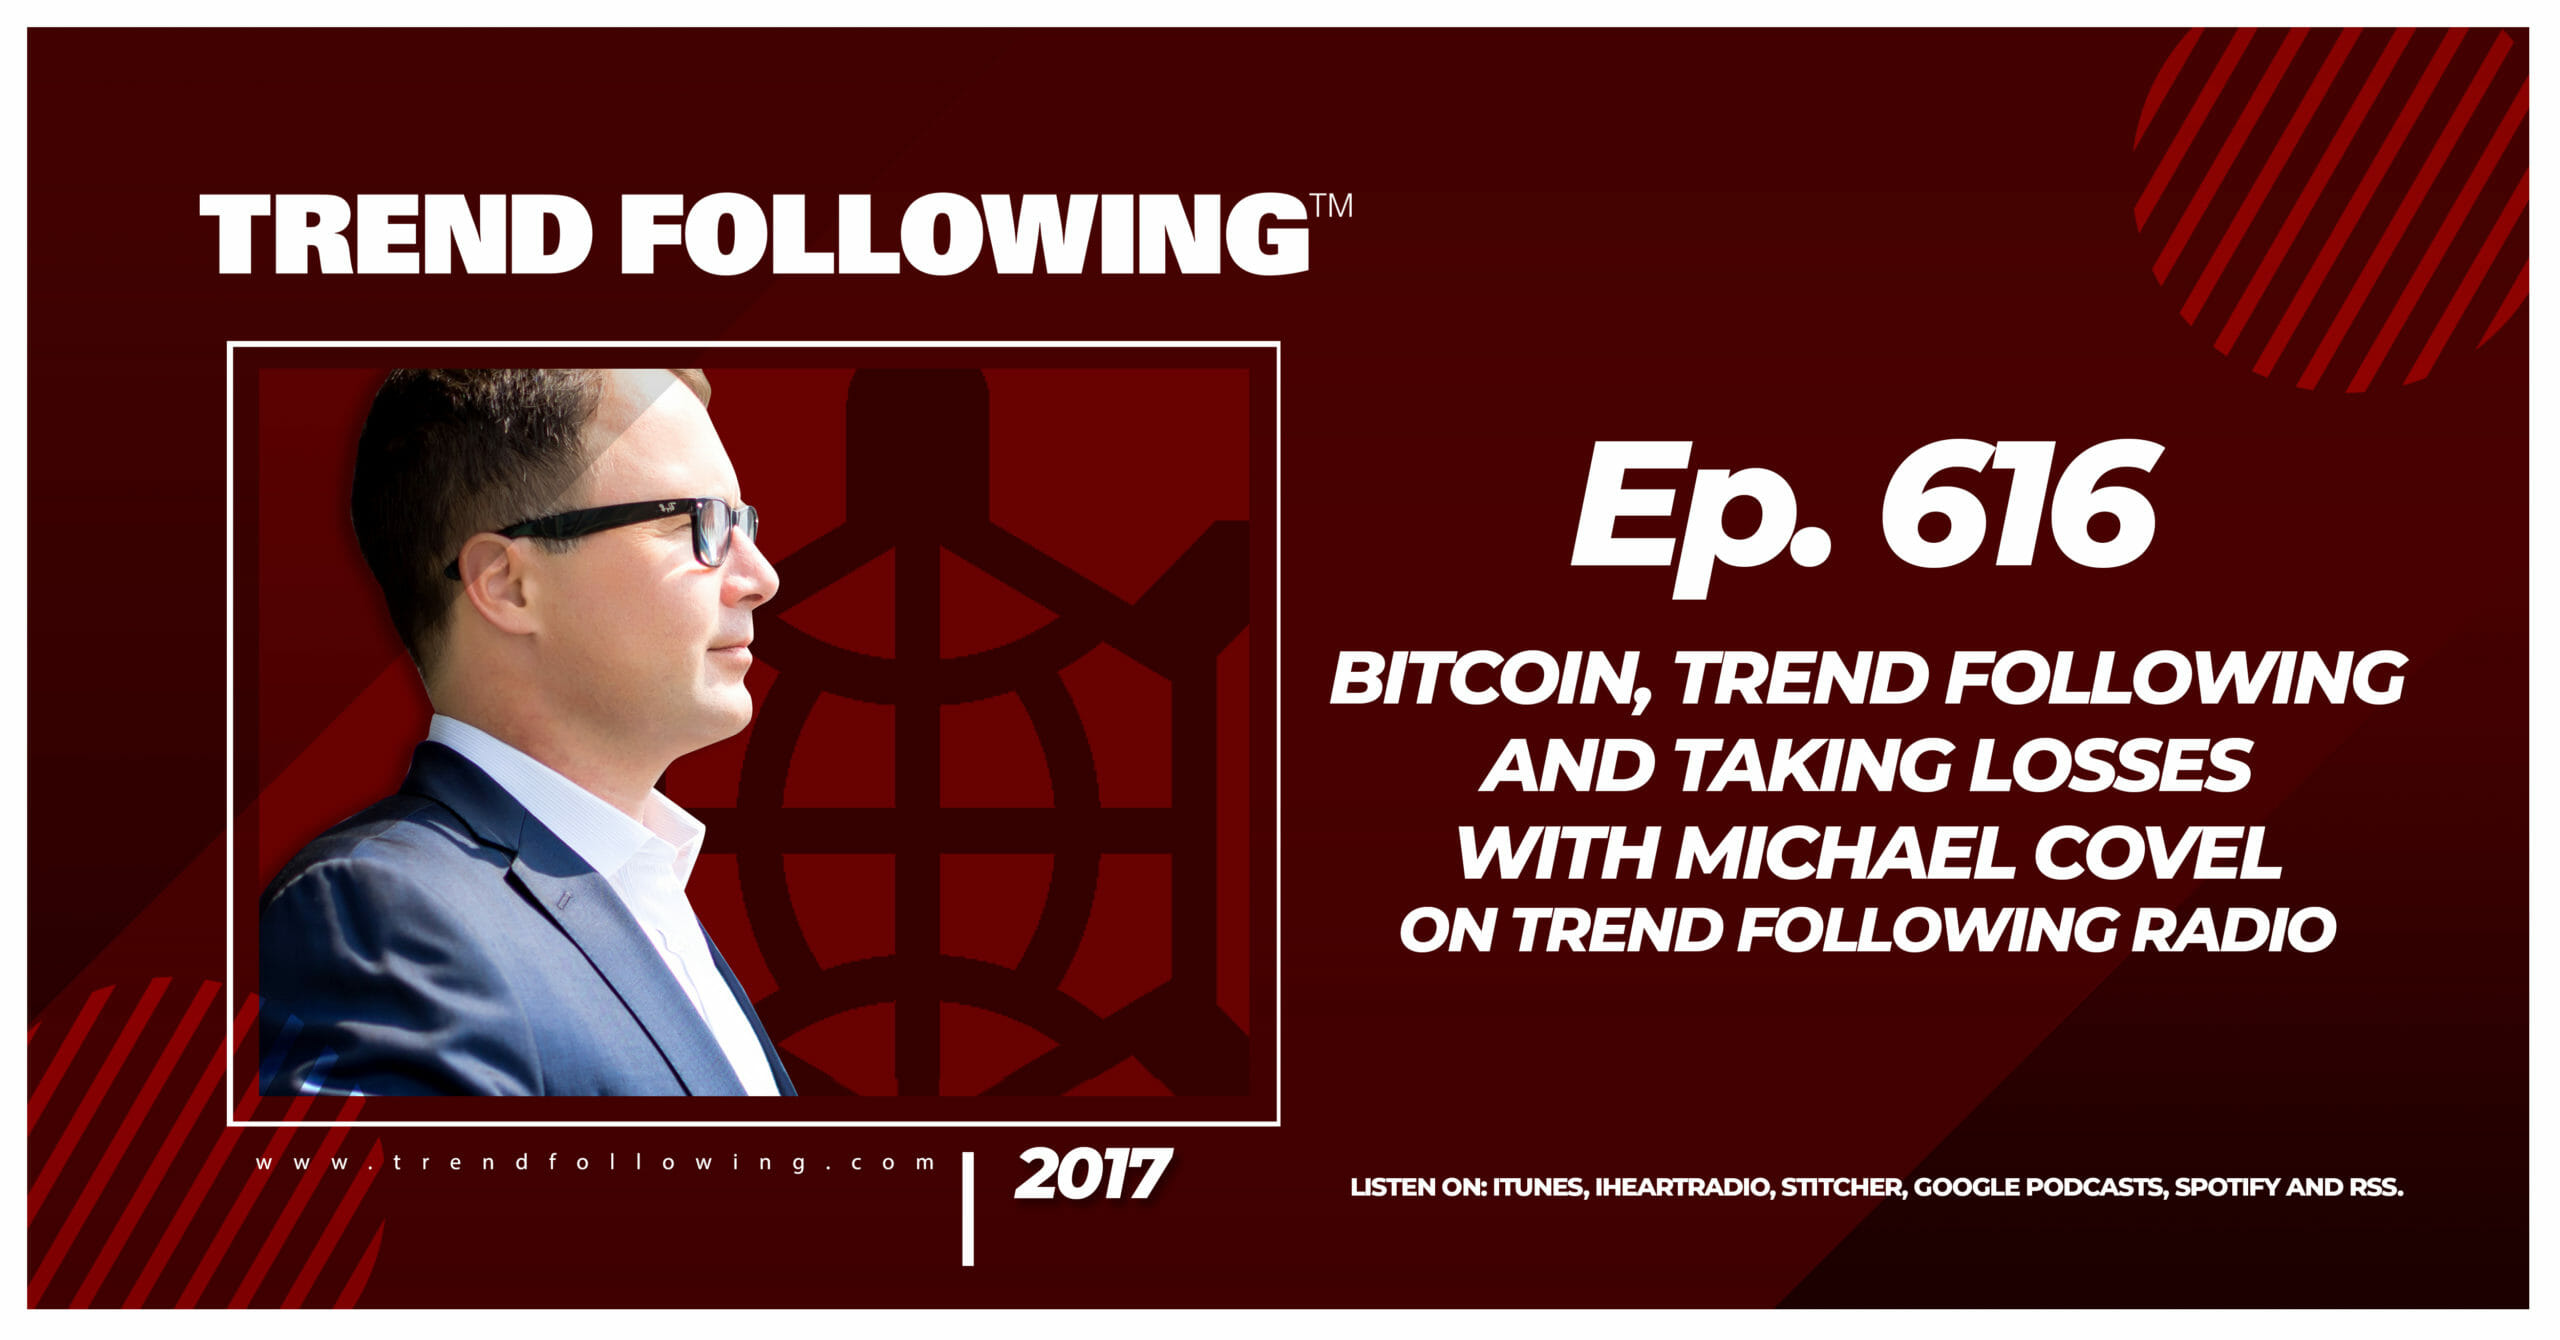 Bitcoin, Trend Following and Taking Losses with Michael Covel